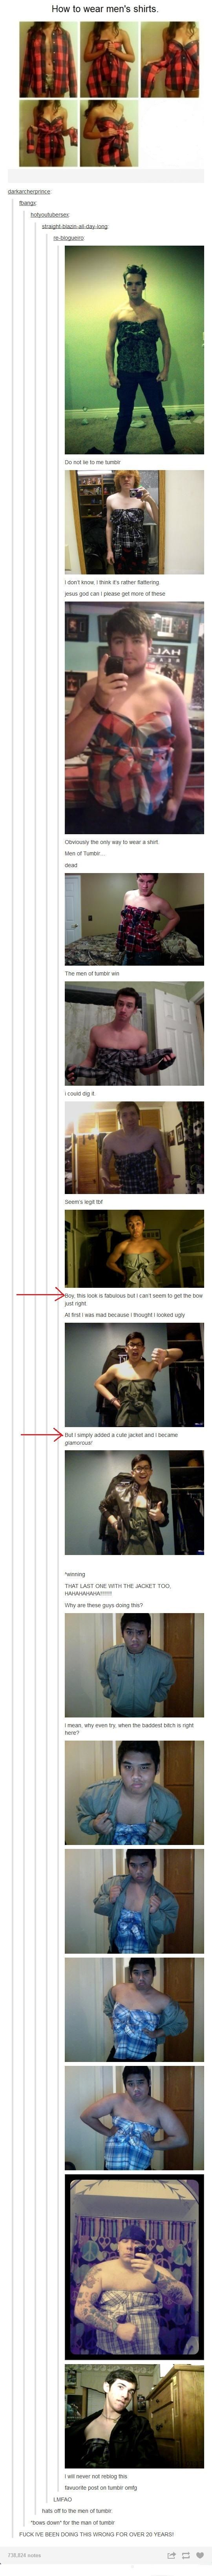 A Girl Posted How To Wear Mens Shirts, And How The Men On Tumblr Reacts To This is Freaking Awesome.